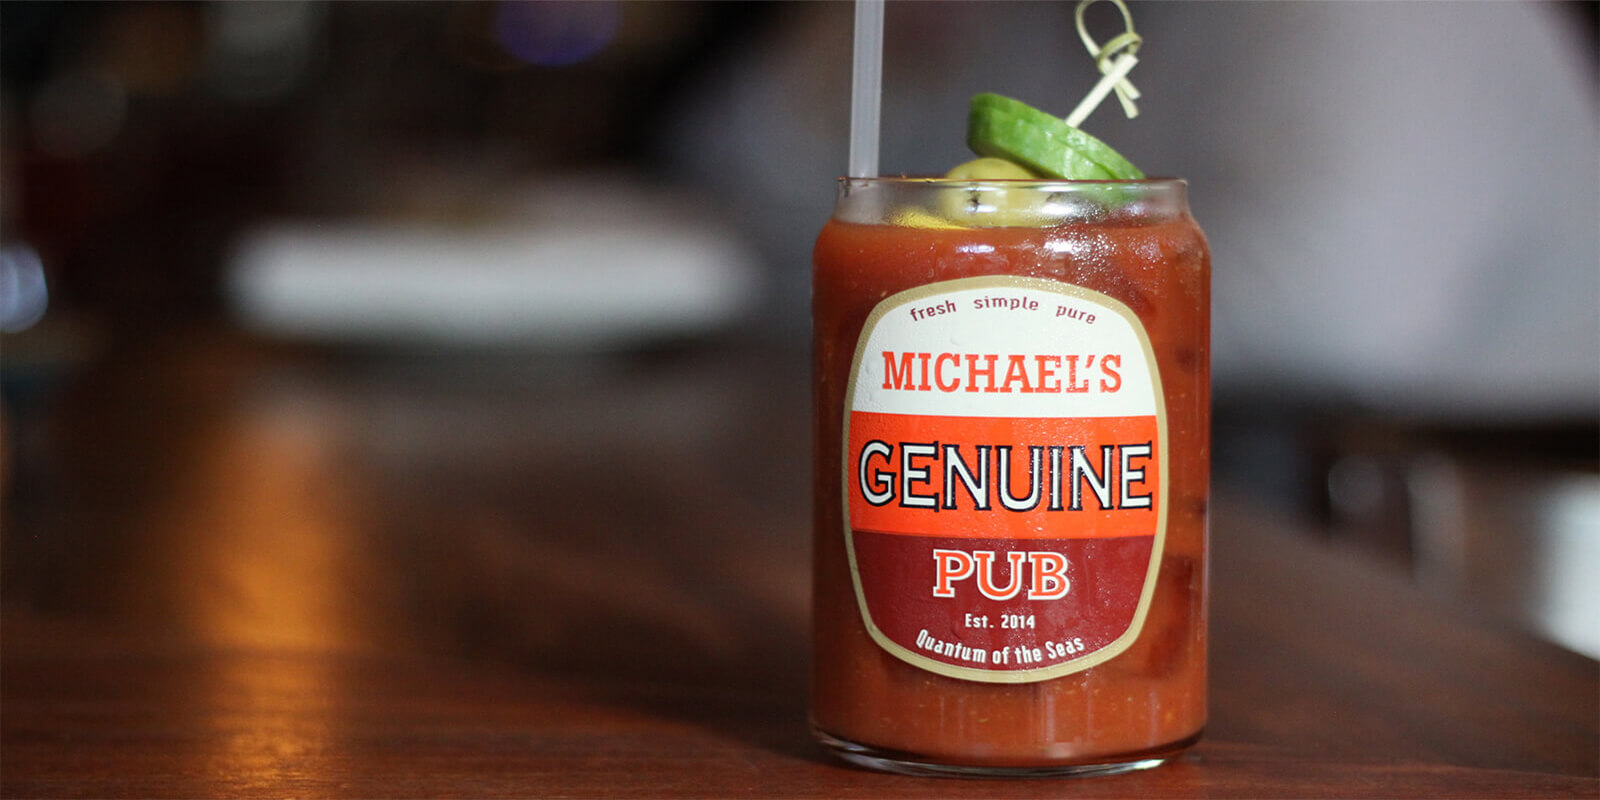 Michael's Genuine Pub | Royal Caribbean